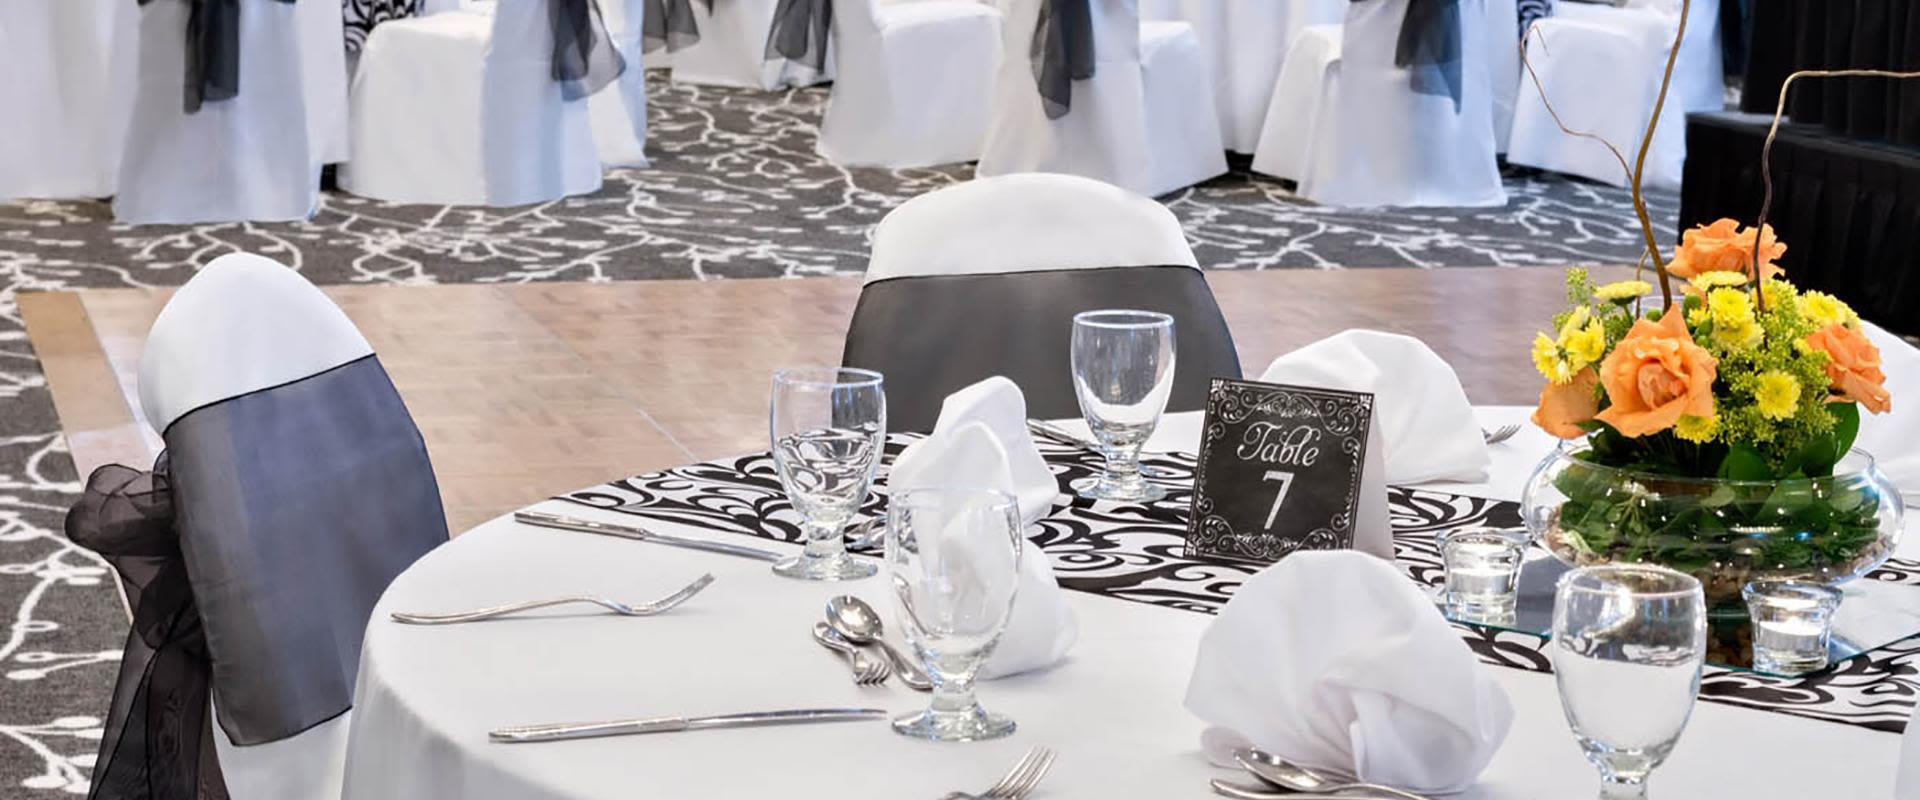 Black and White Event Table with Flowers